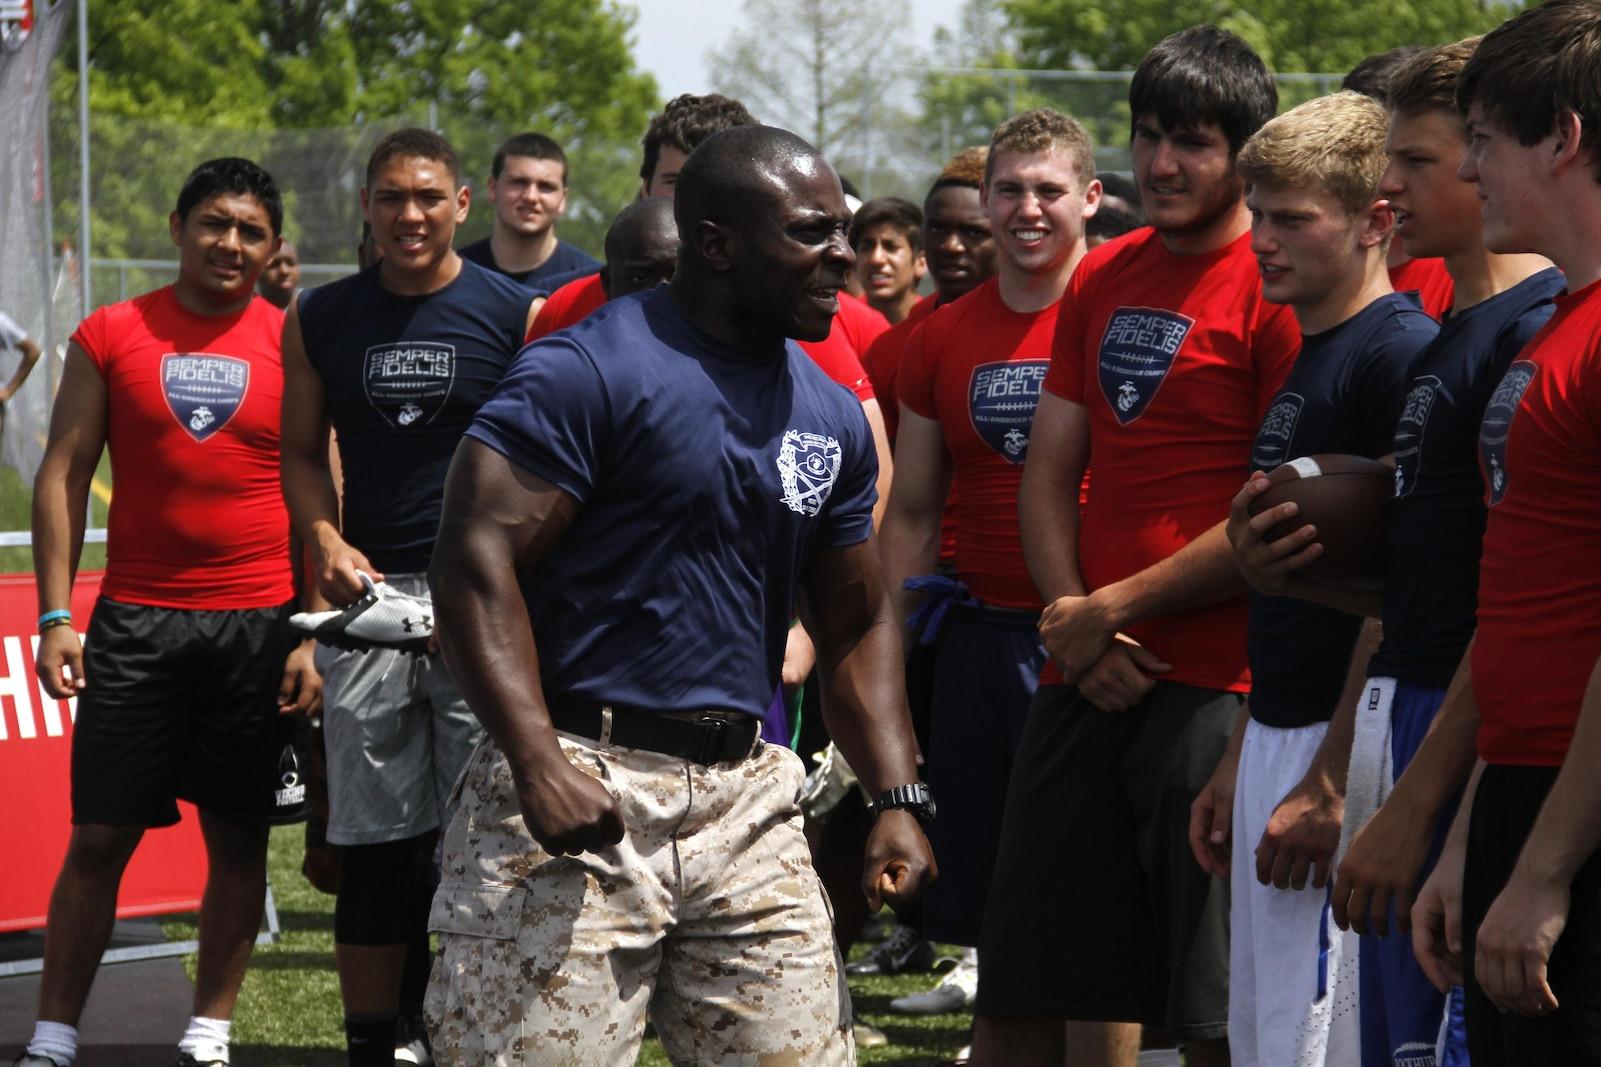 Gunnery Sergeant Aubrey L. McDade, Jr., a Company I, 3rd Battalion, Recruit Training Regiment, Marine Corps Recruit Depot San Diego chief drill instructor, motivates football players during the Semper Fidelis All-American Football Camp at Rockhurst High School's Vincent P. Dasta Memorial Football Stadium May 3, 2015.